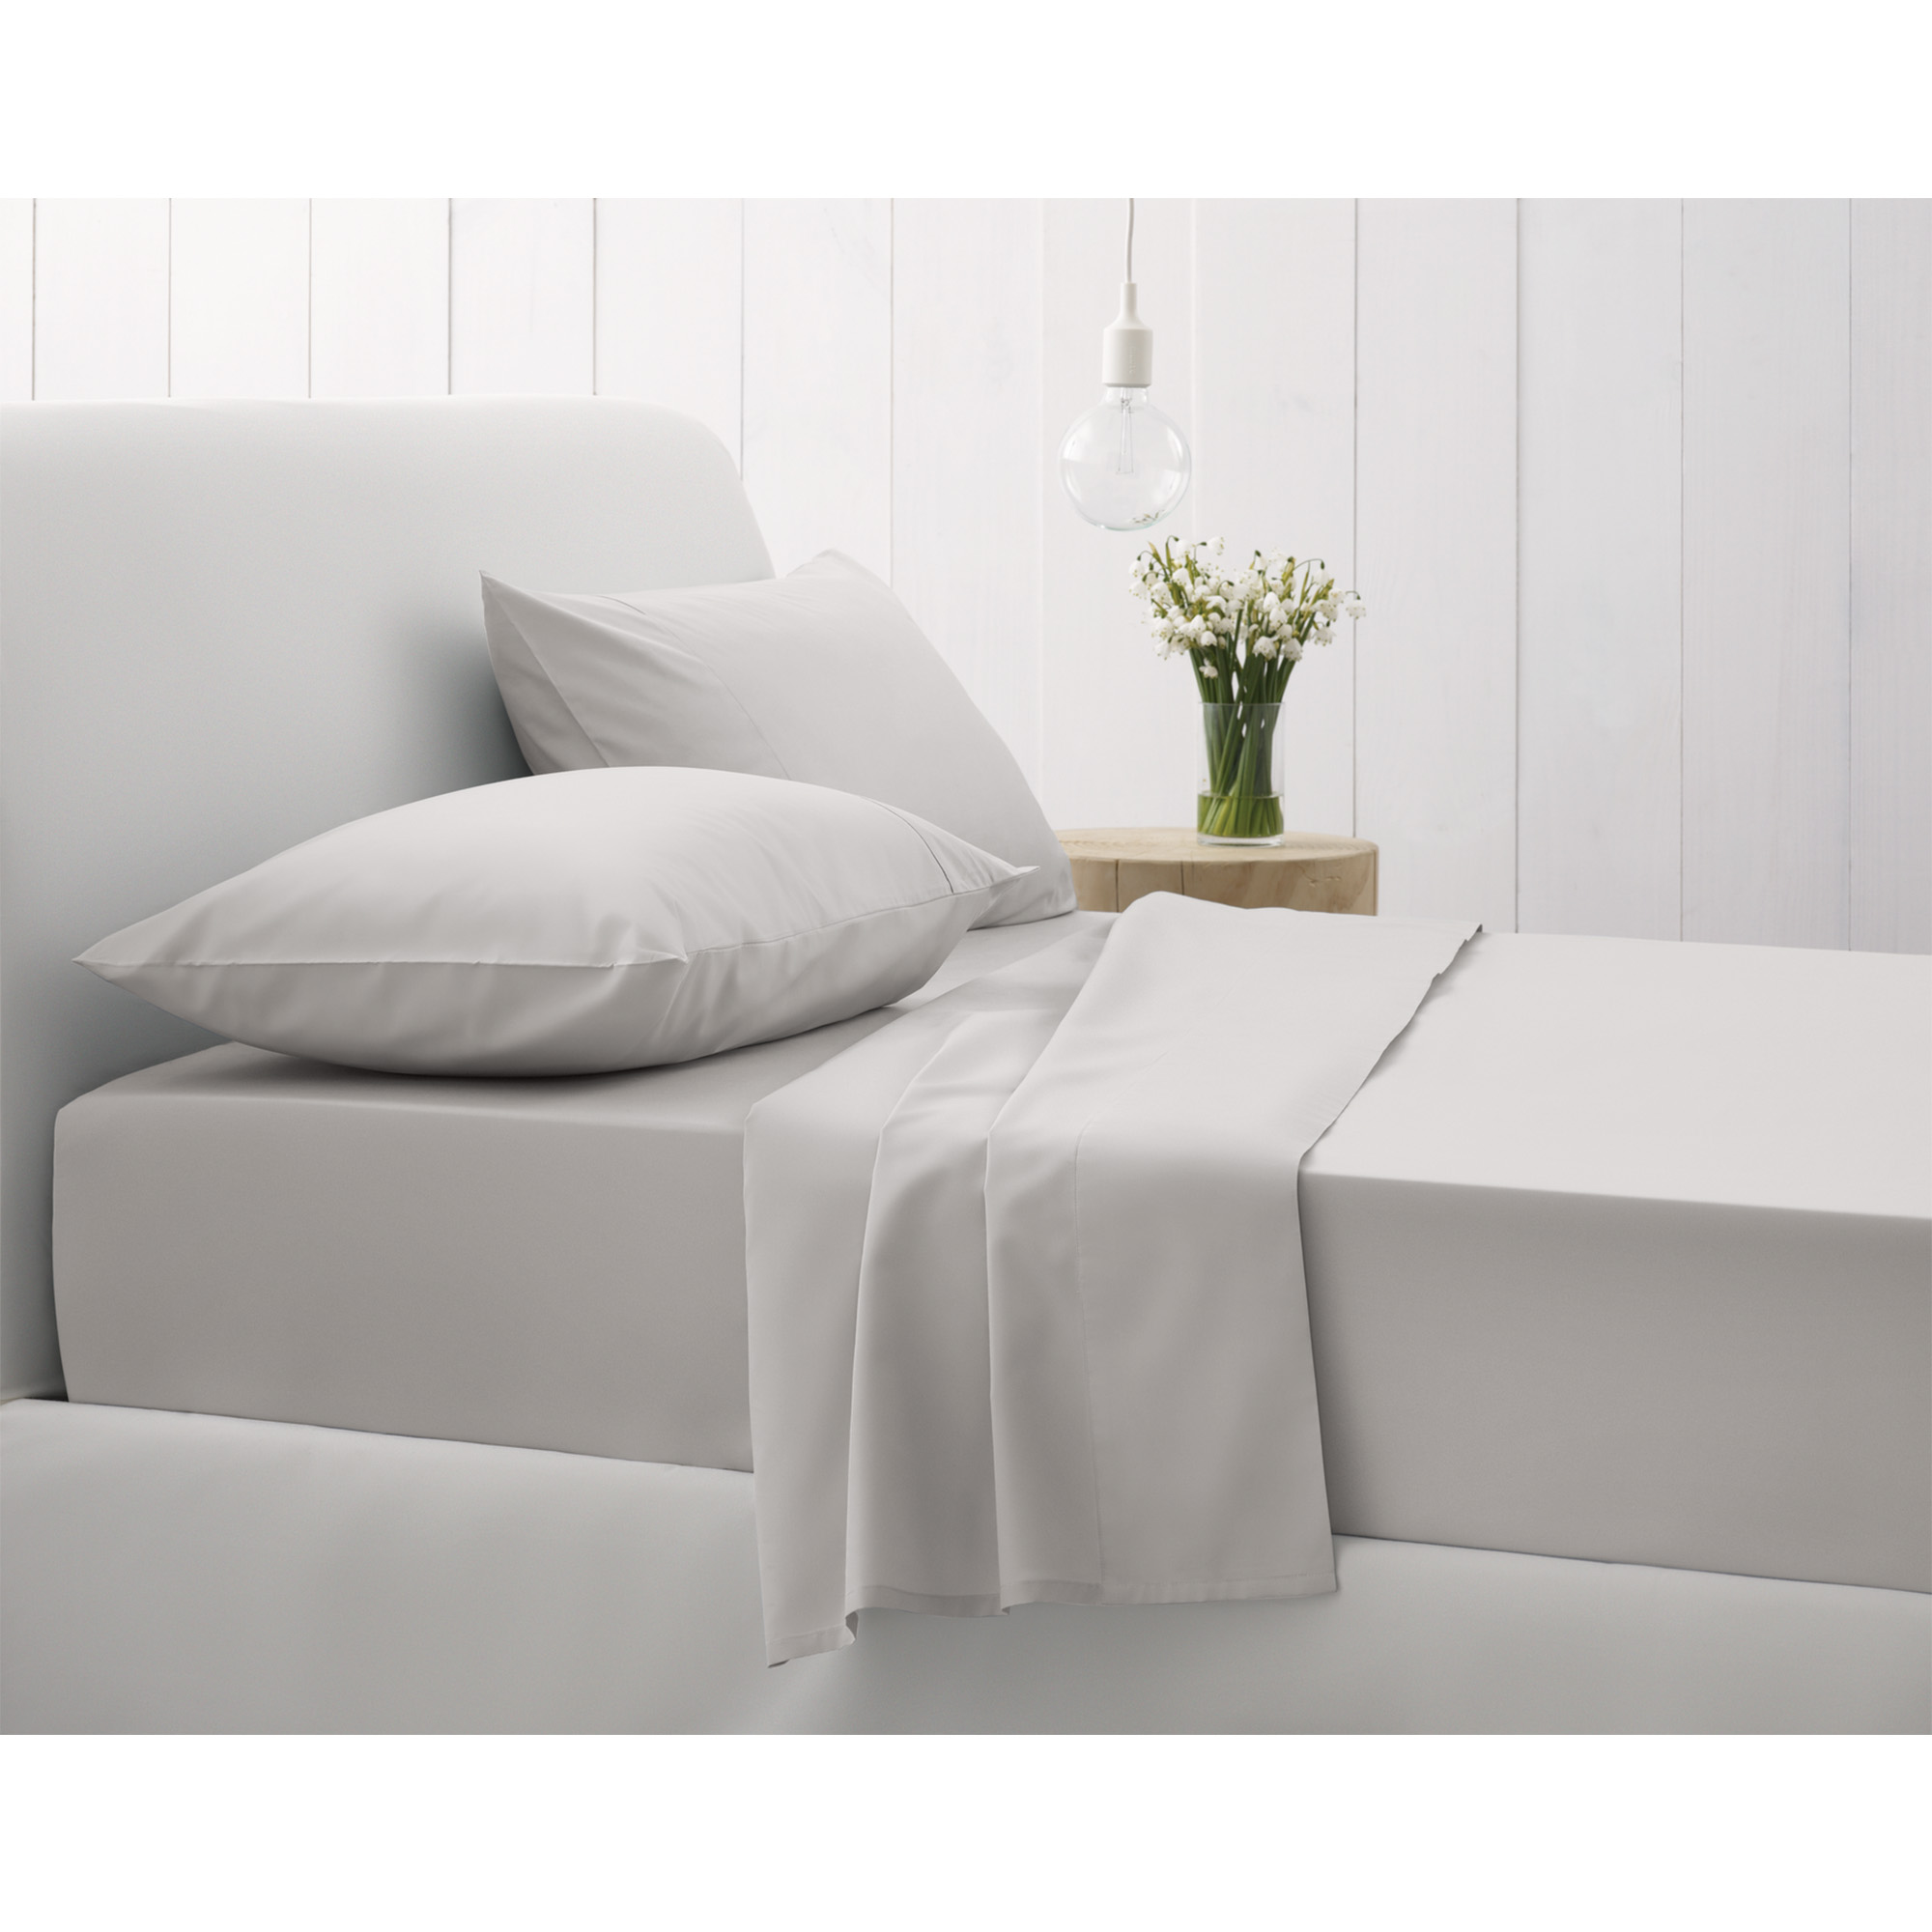 500TC FITTED SHEET DOUBLE SILVER